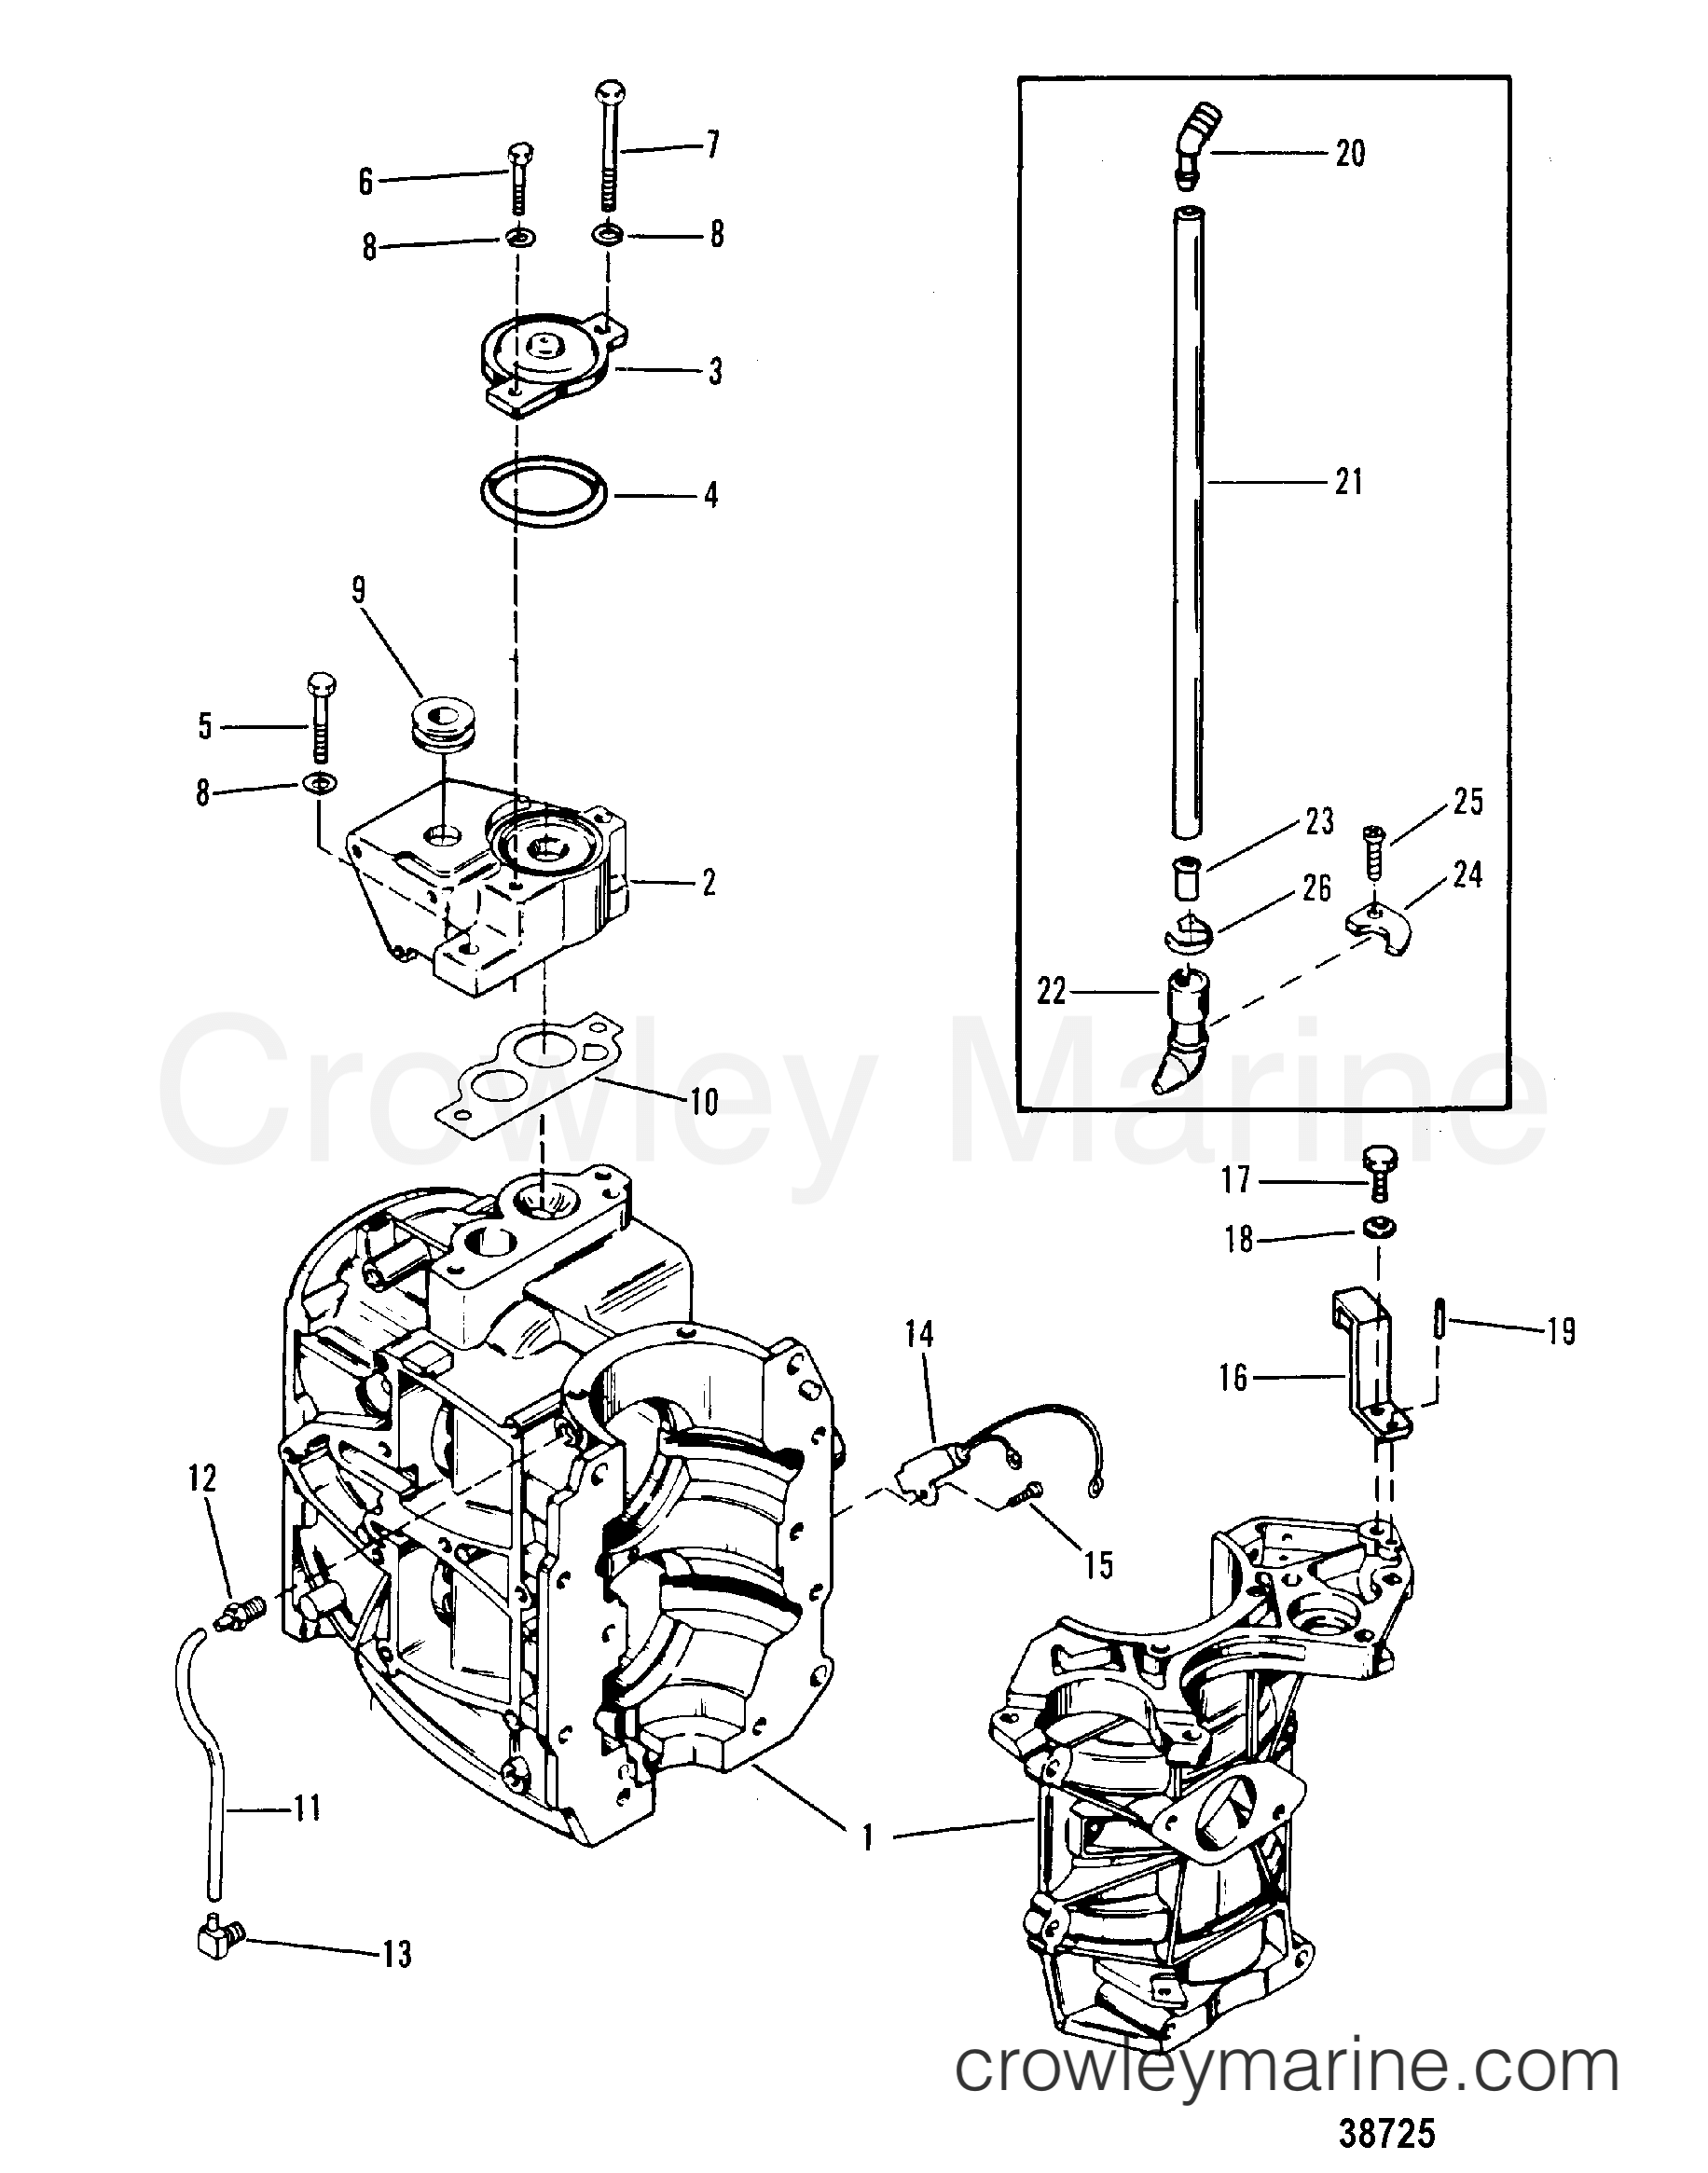 CYLINDER BLOCK AND THERMOSTAT - 1987 Mercury Outboard 35